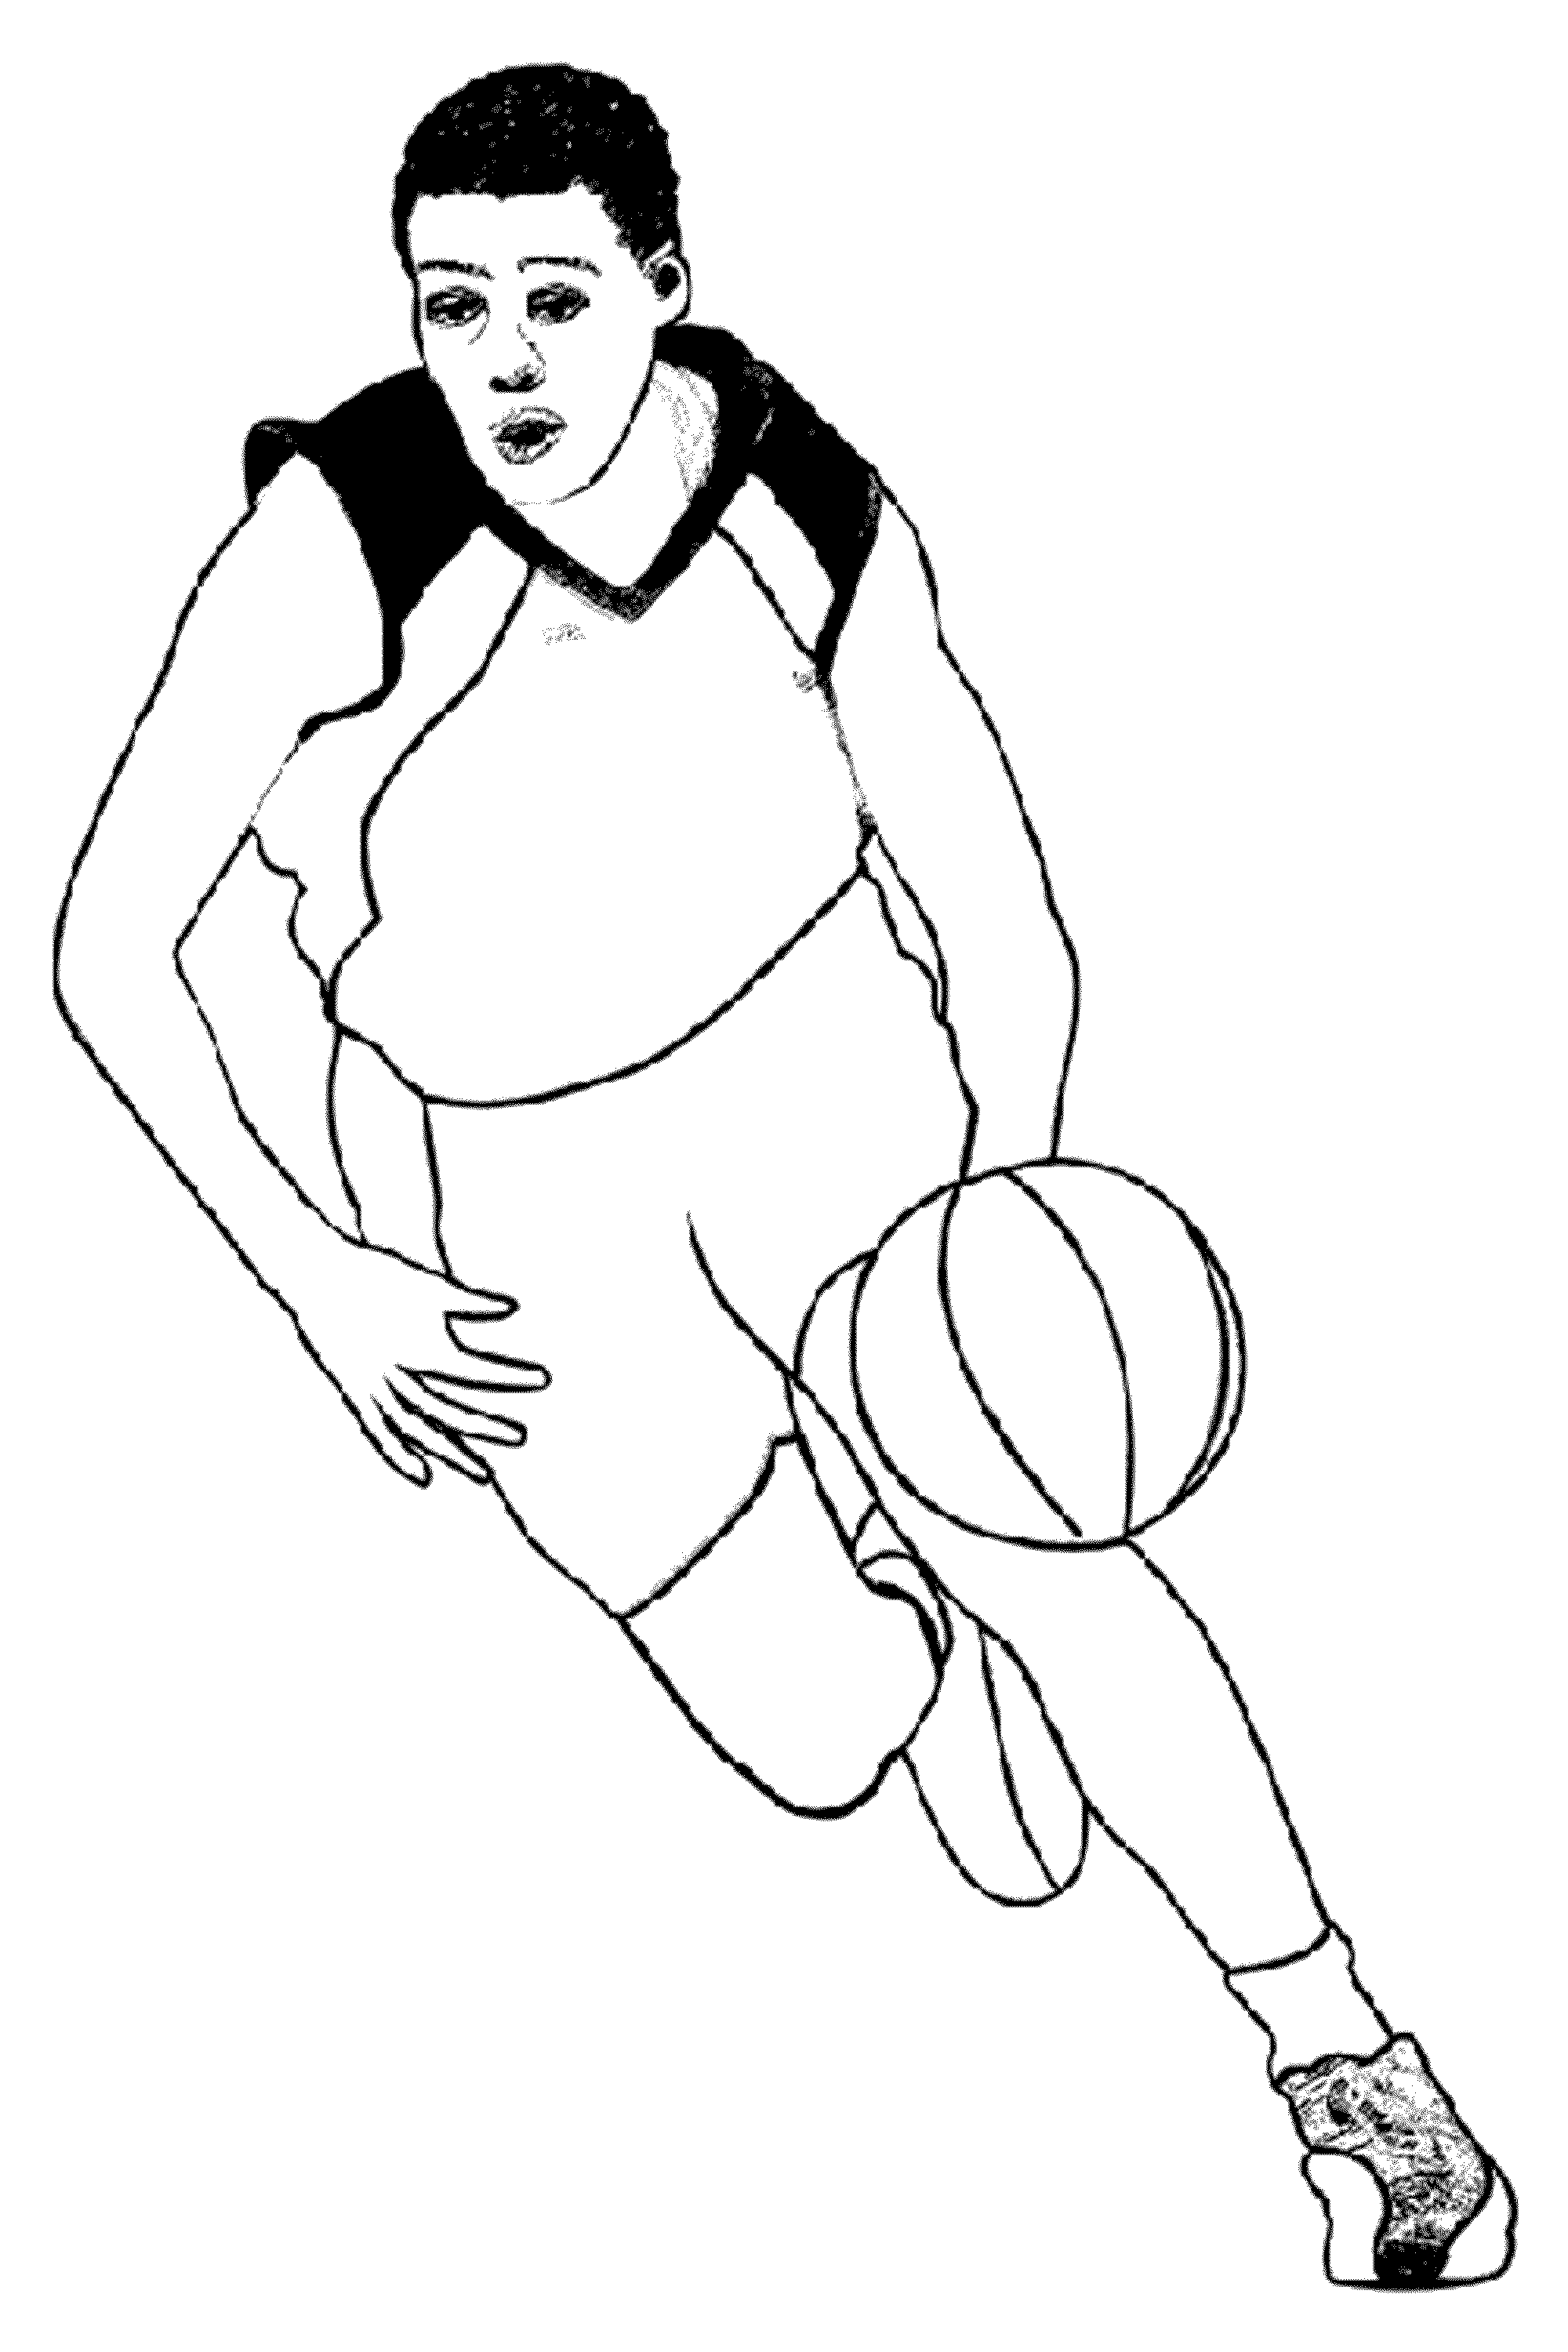 basketball coloring page basketball coloring pages customize and print pdfs page coloring basketball